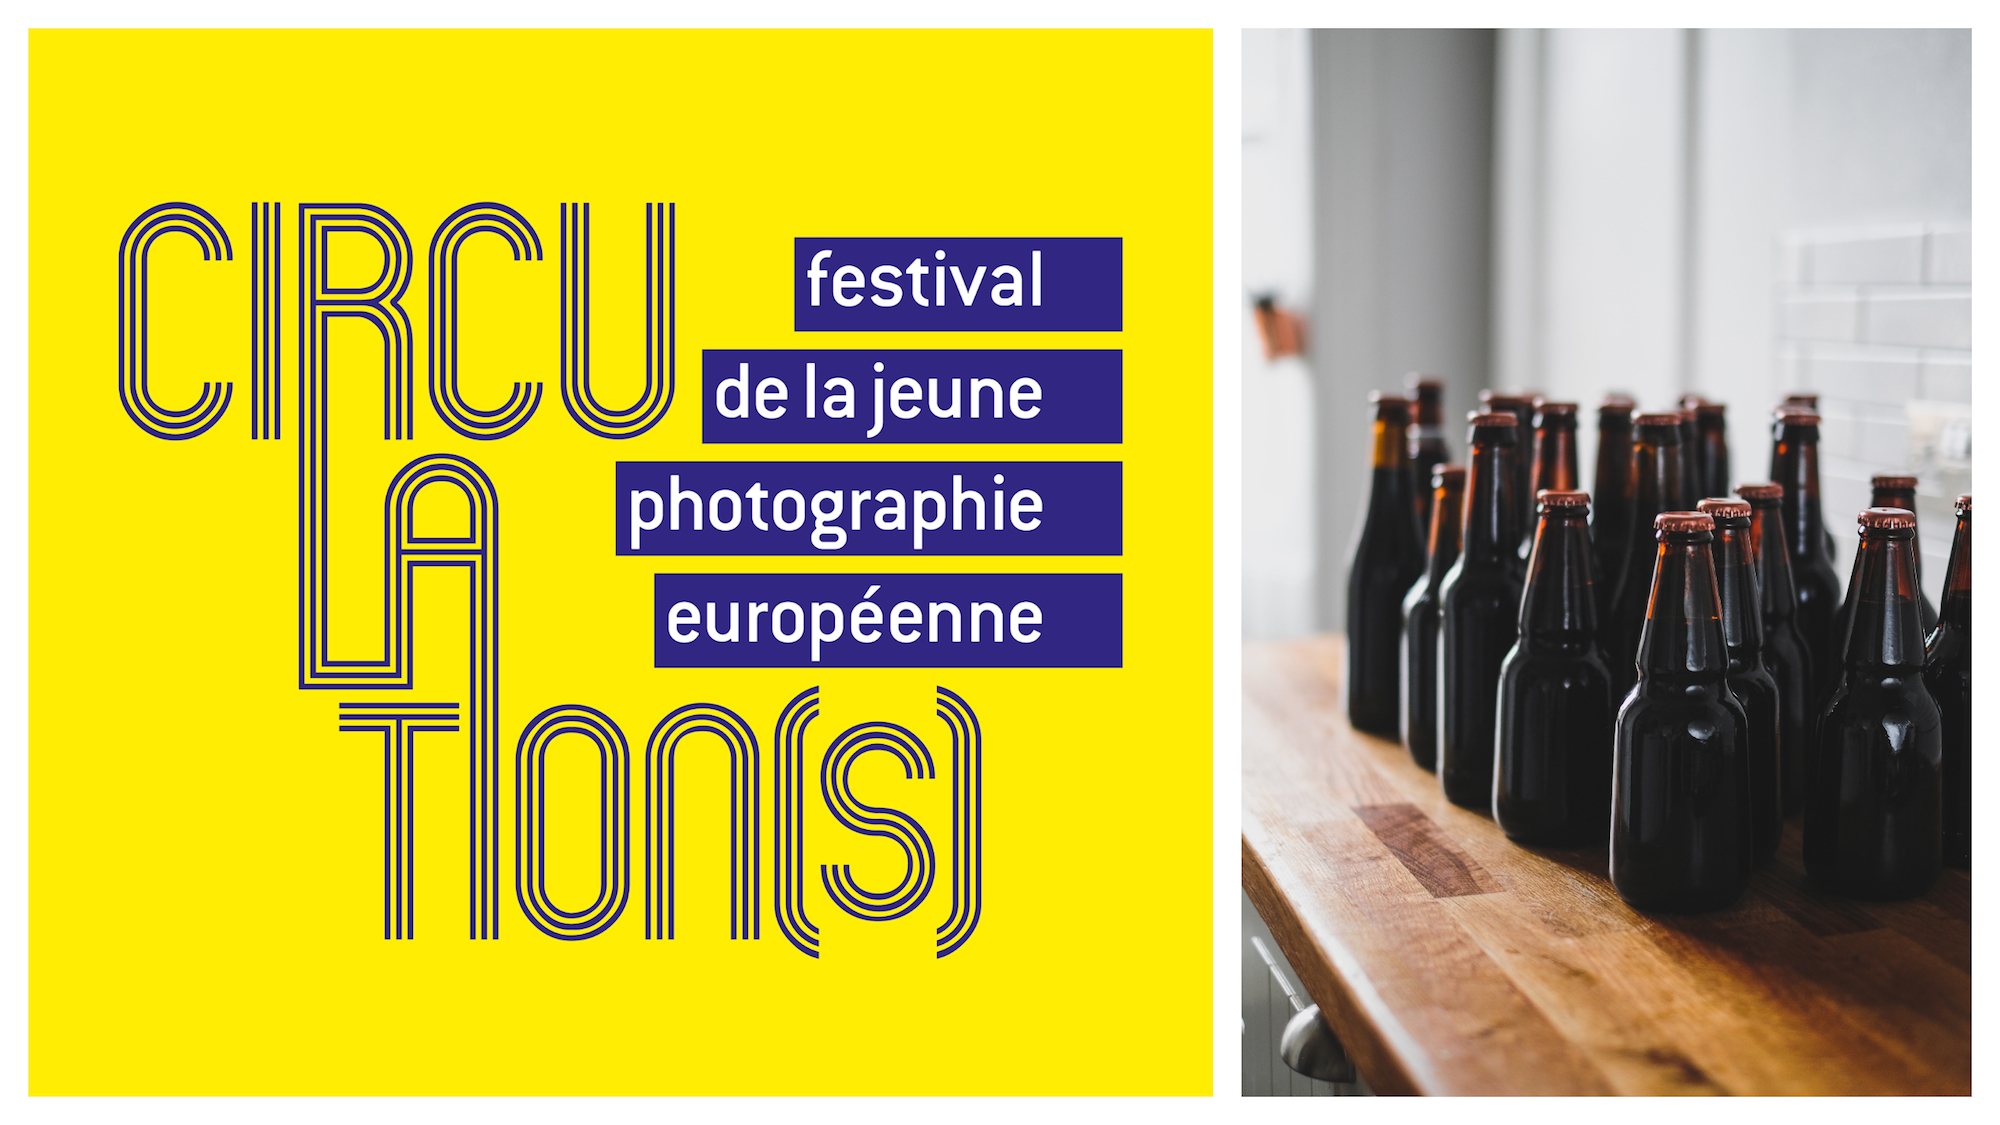 What to do in Paris in March? Photography exhibitions like Circulations (left) and tasting Paris' locally brewed craft beer (right).